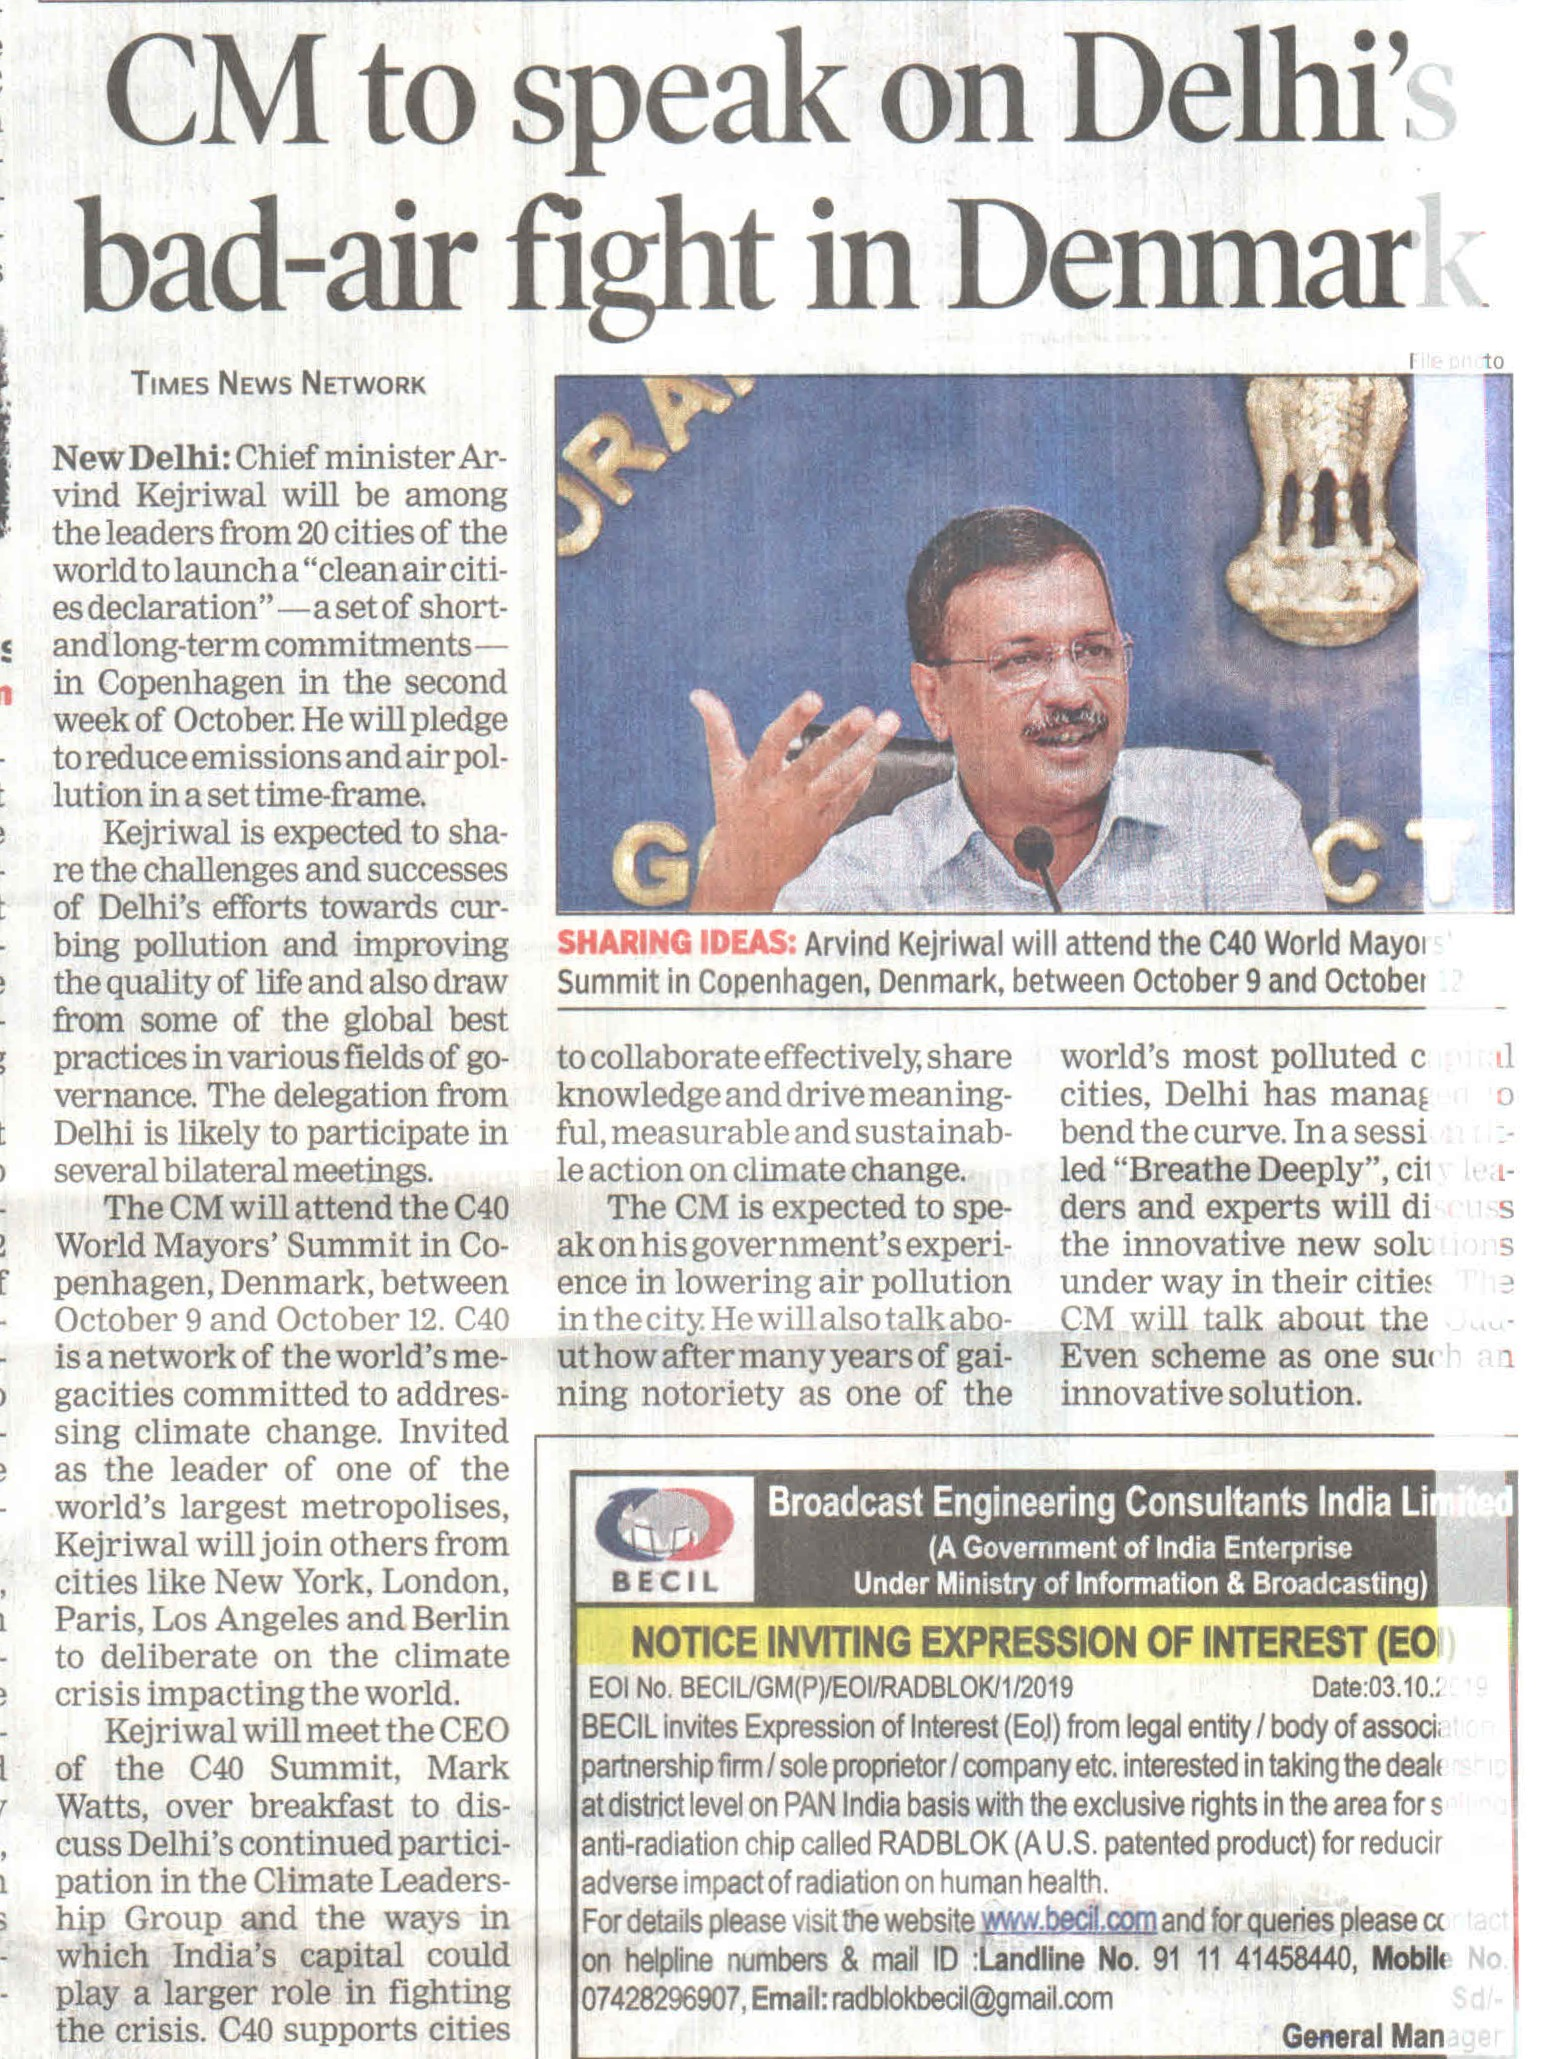 CM to speak on Delhi's bad-air fight in Denmark